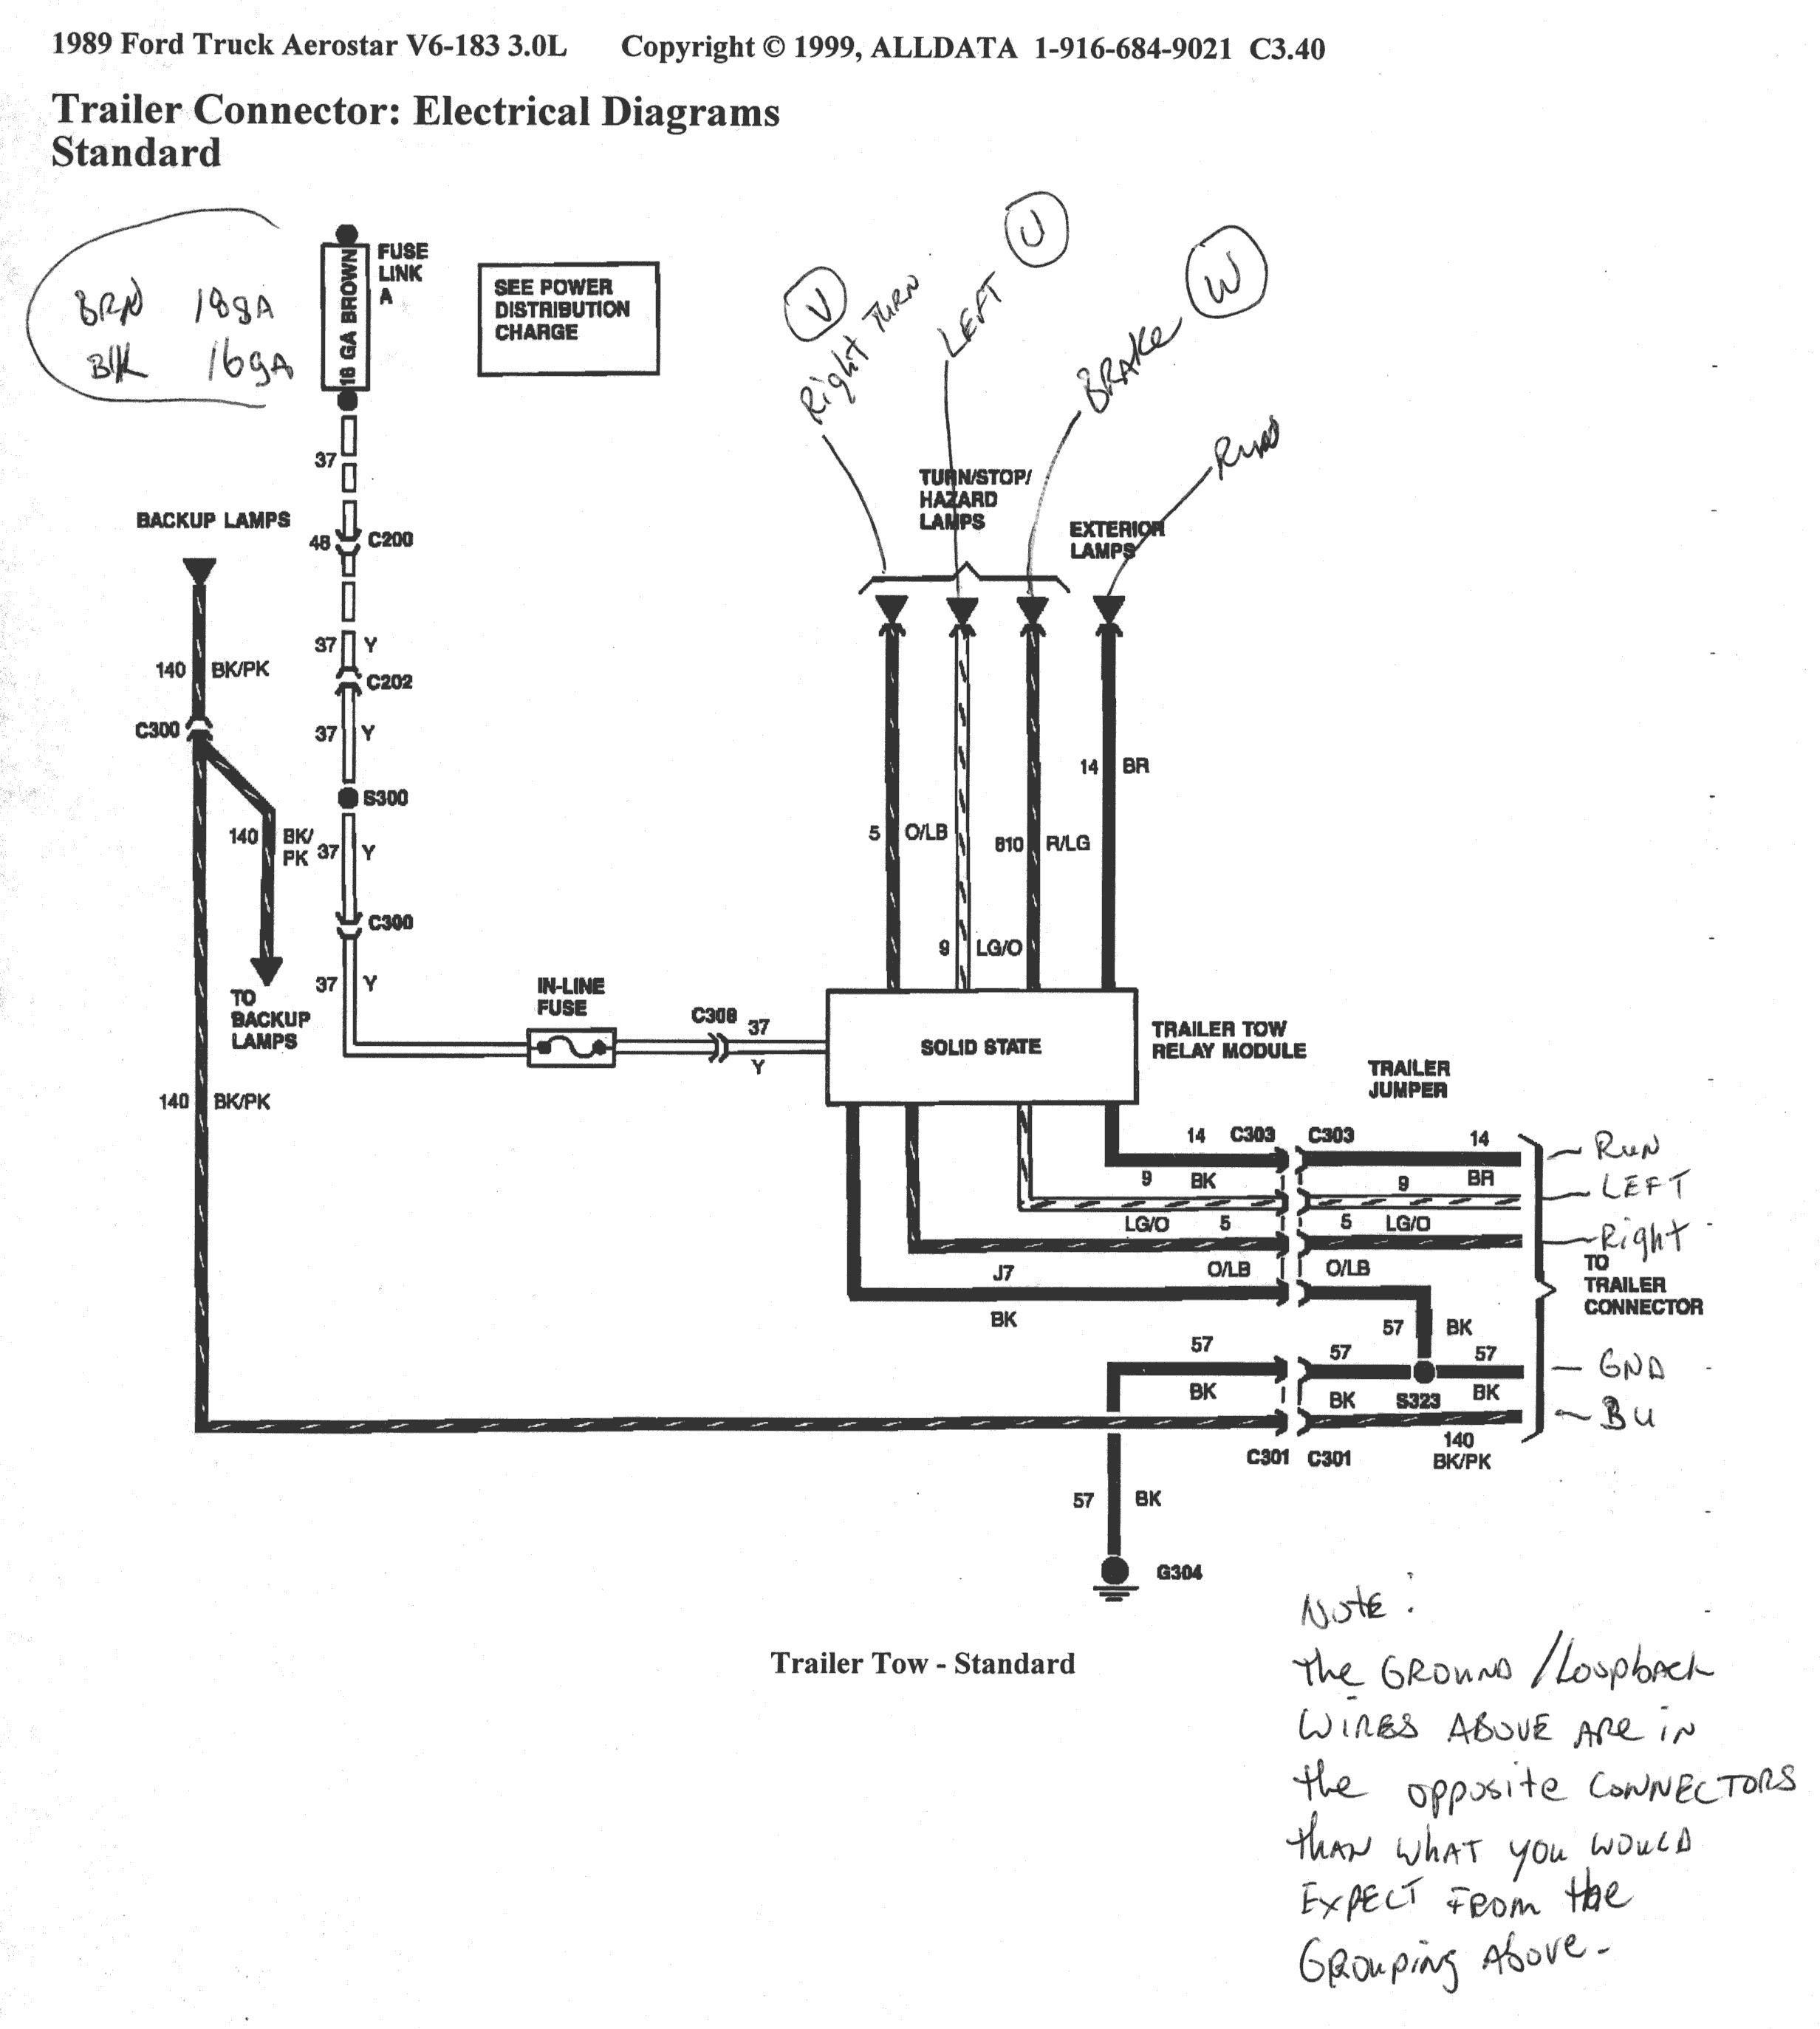 7 Pin Trailer Connector Plug Wiring Utility With Ford F250 Diagram 6 2002  Ford F 250 Super Duty ...